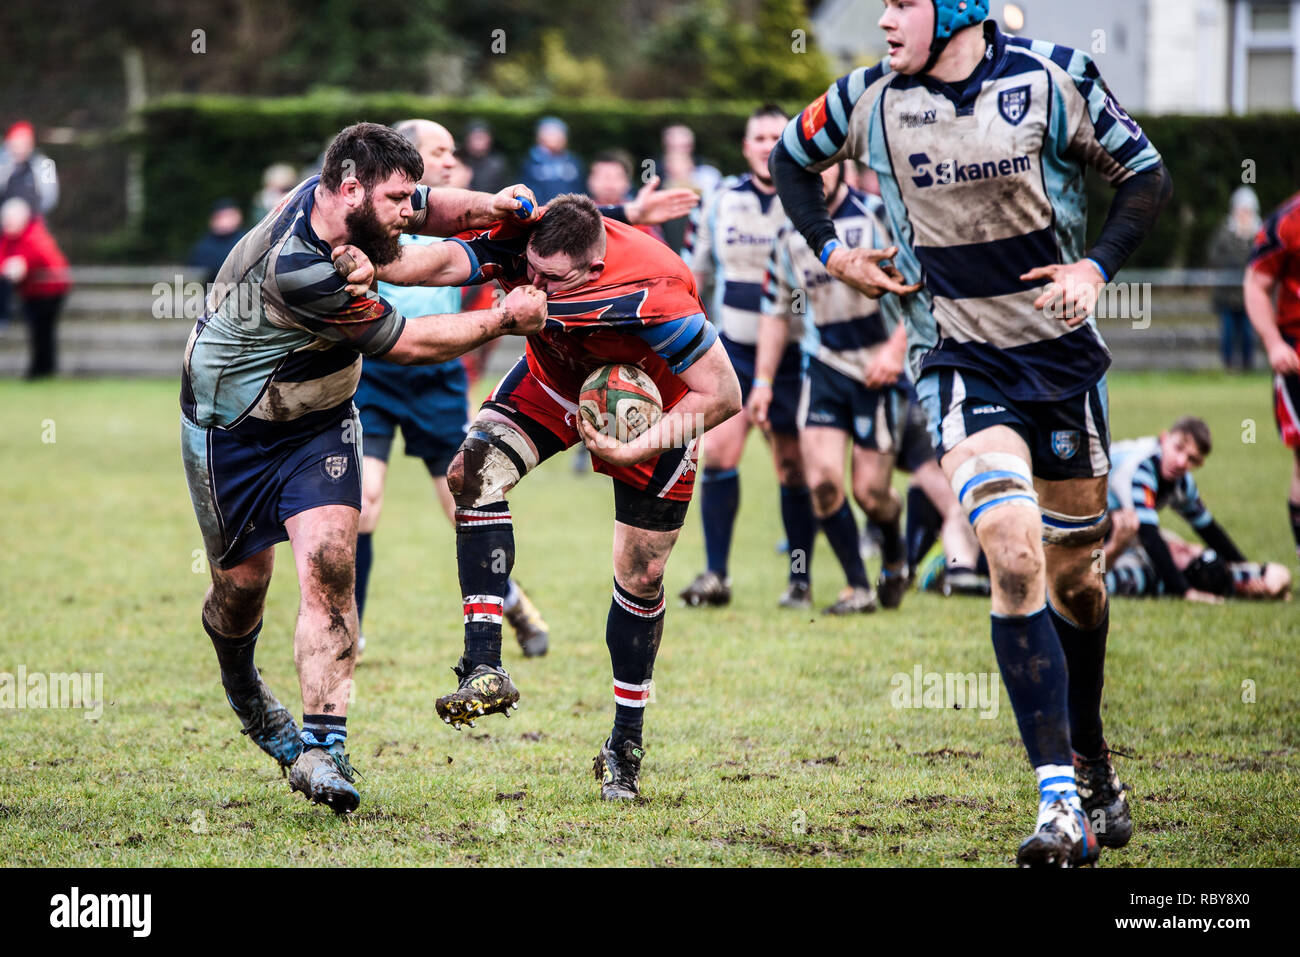 BLAINA, WALES, UK -18 FEBRUARY 2017: Blaina vs Machen Rugby Game, WRU Championship league match at Cwmcellyn Park Stock Photo